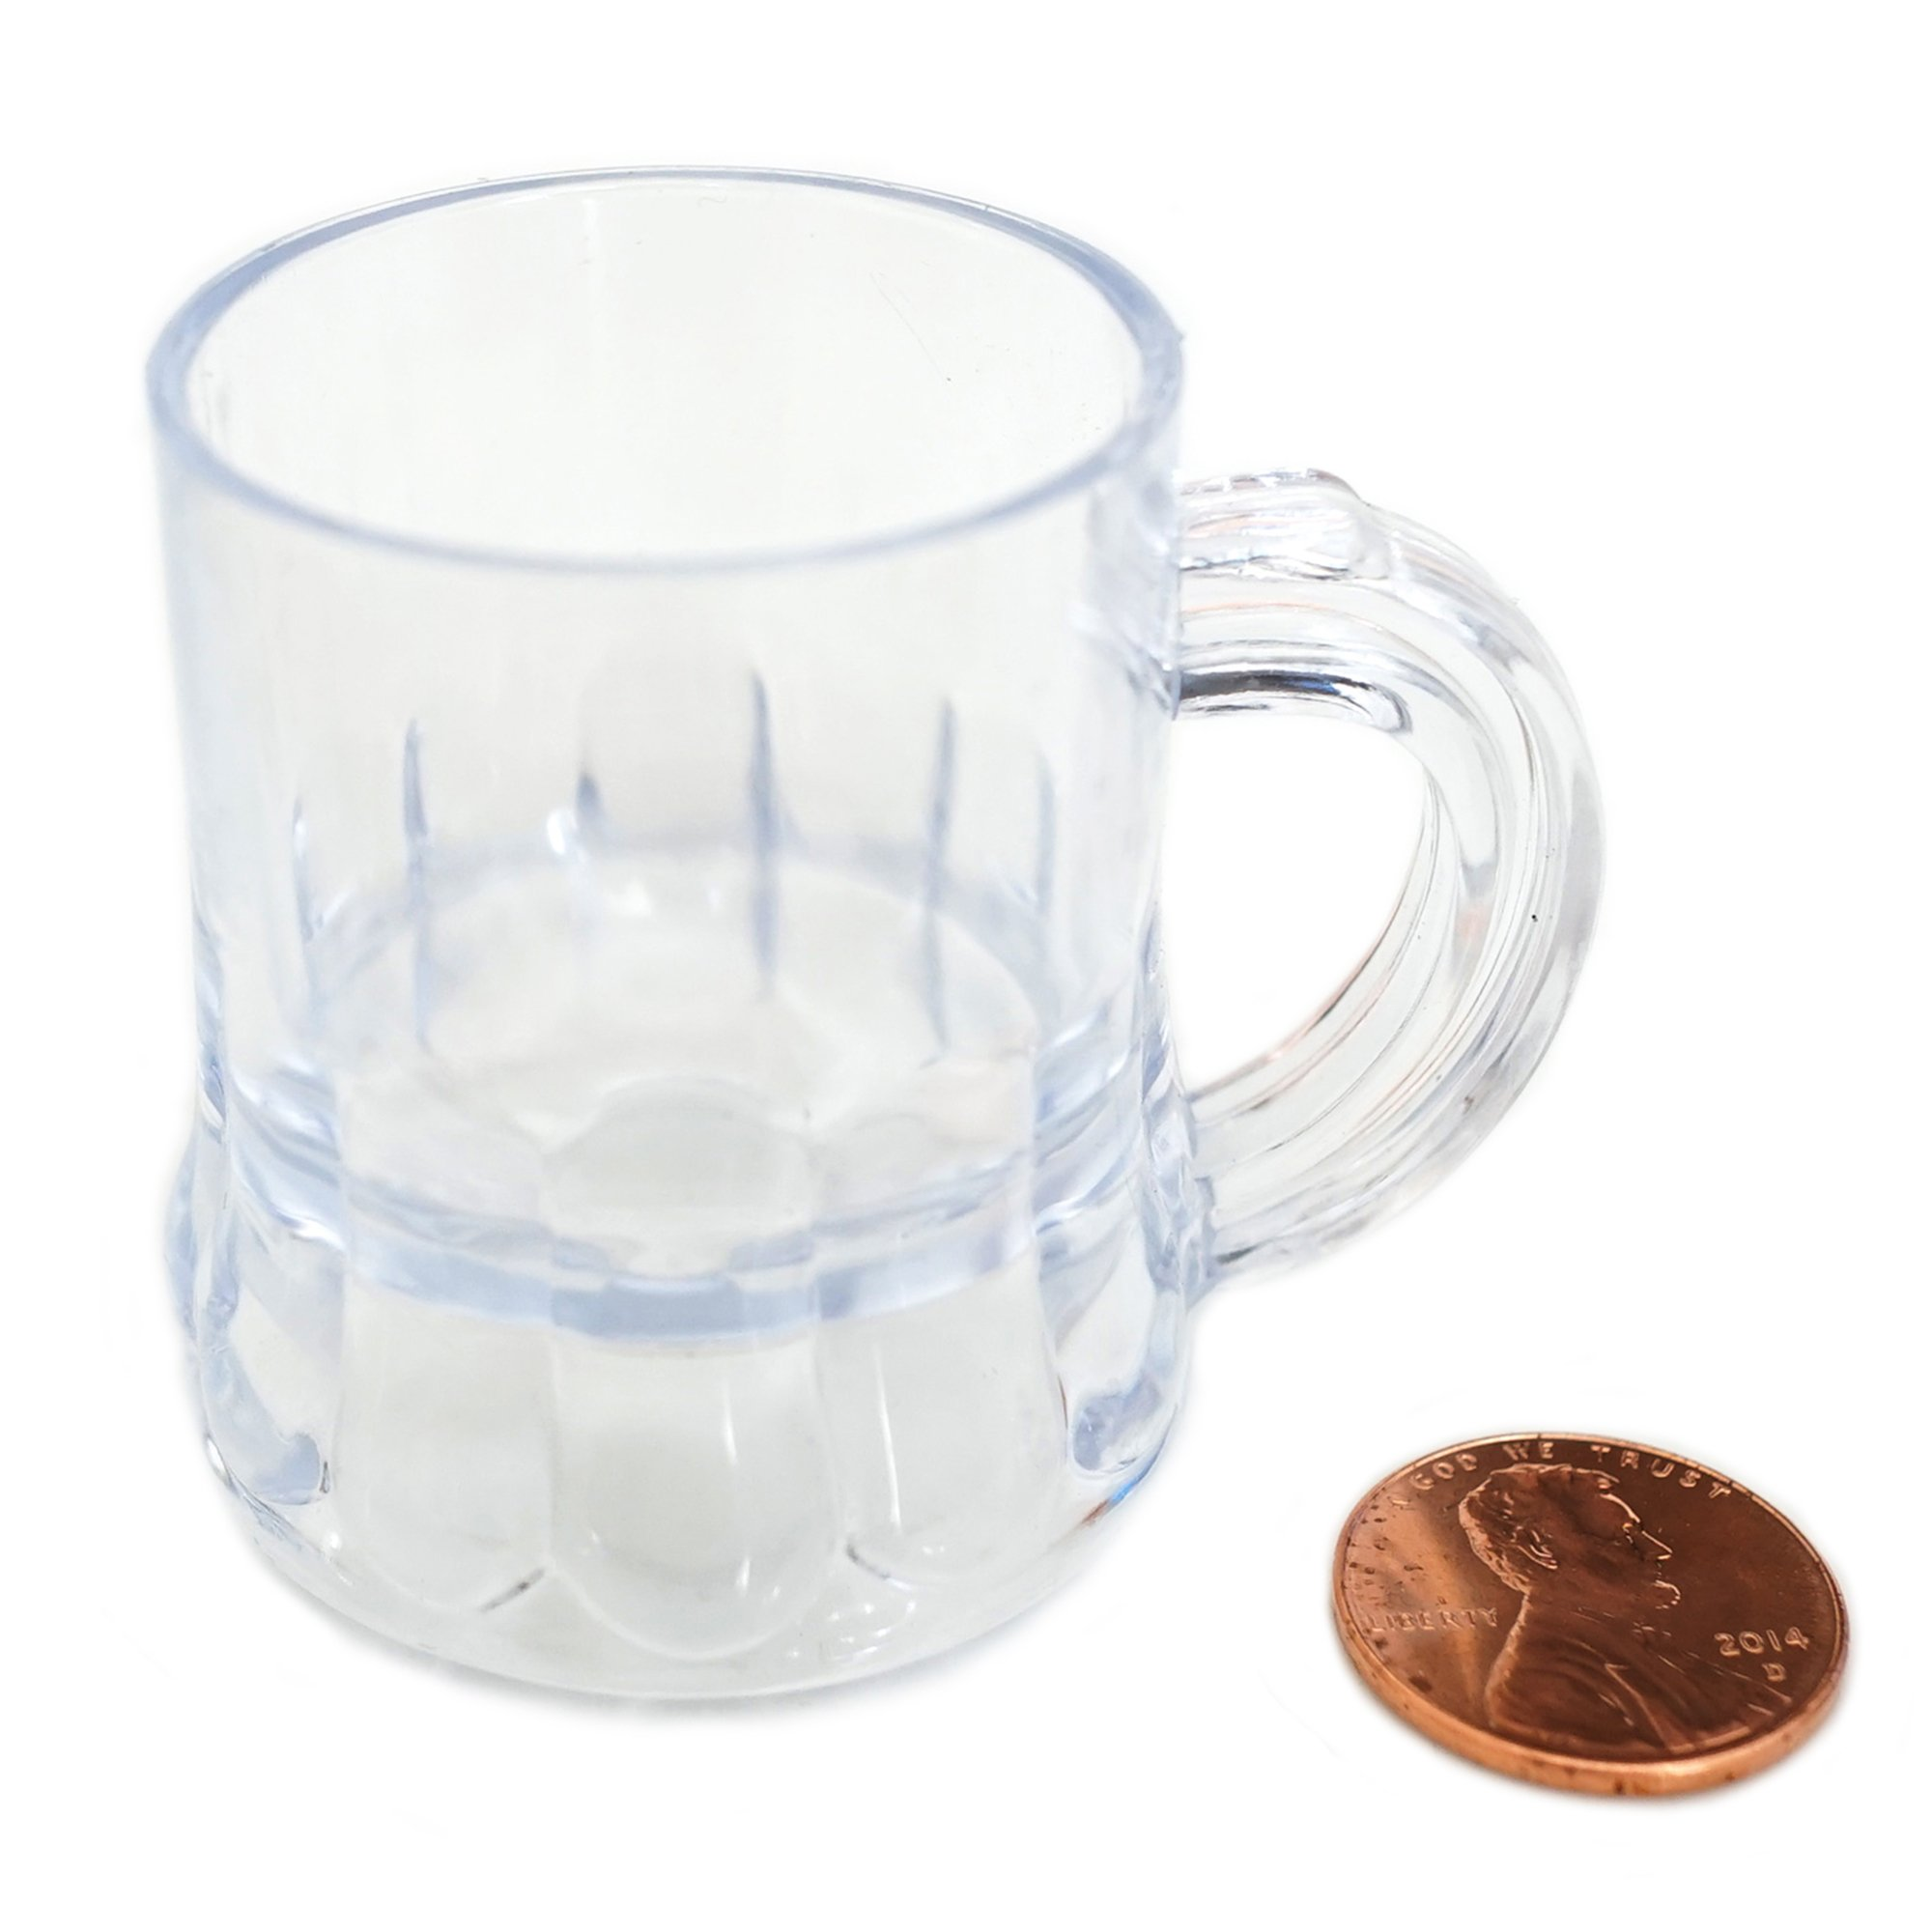 Mini Clear Plastic Beer Mug Shot Glasses- 1.75'' Tall (72 Count) by New Paradise (Image #2)